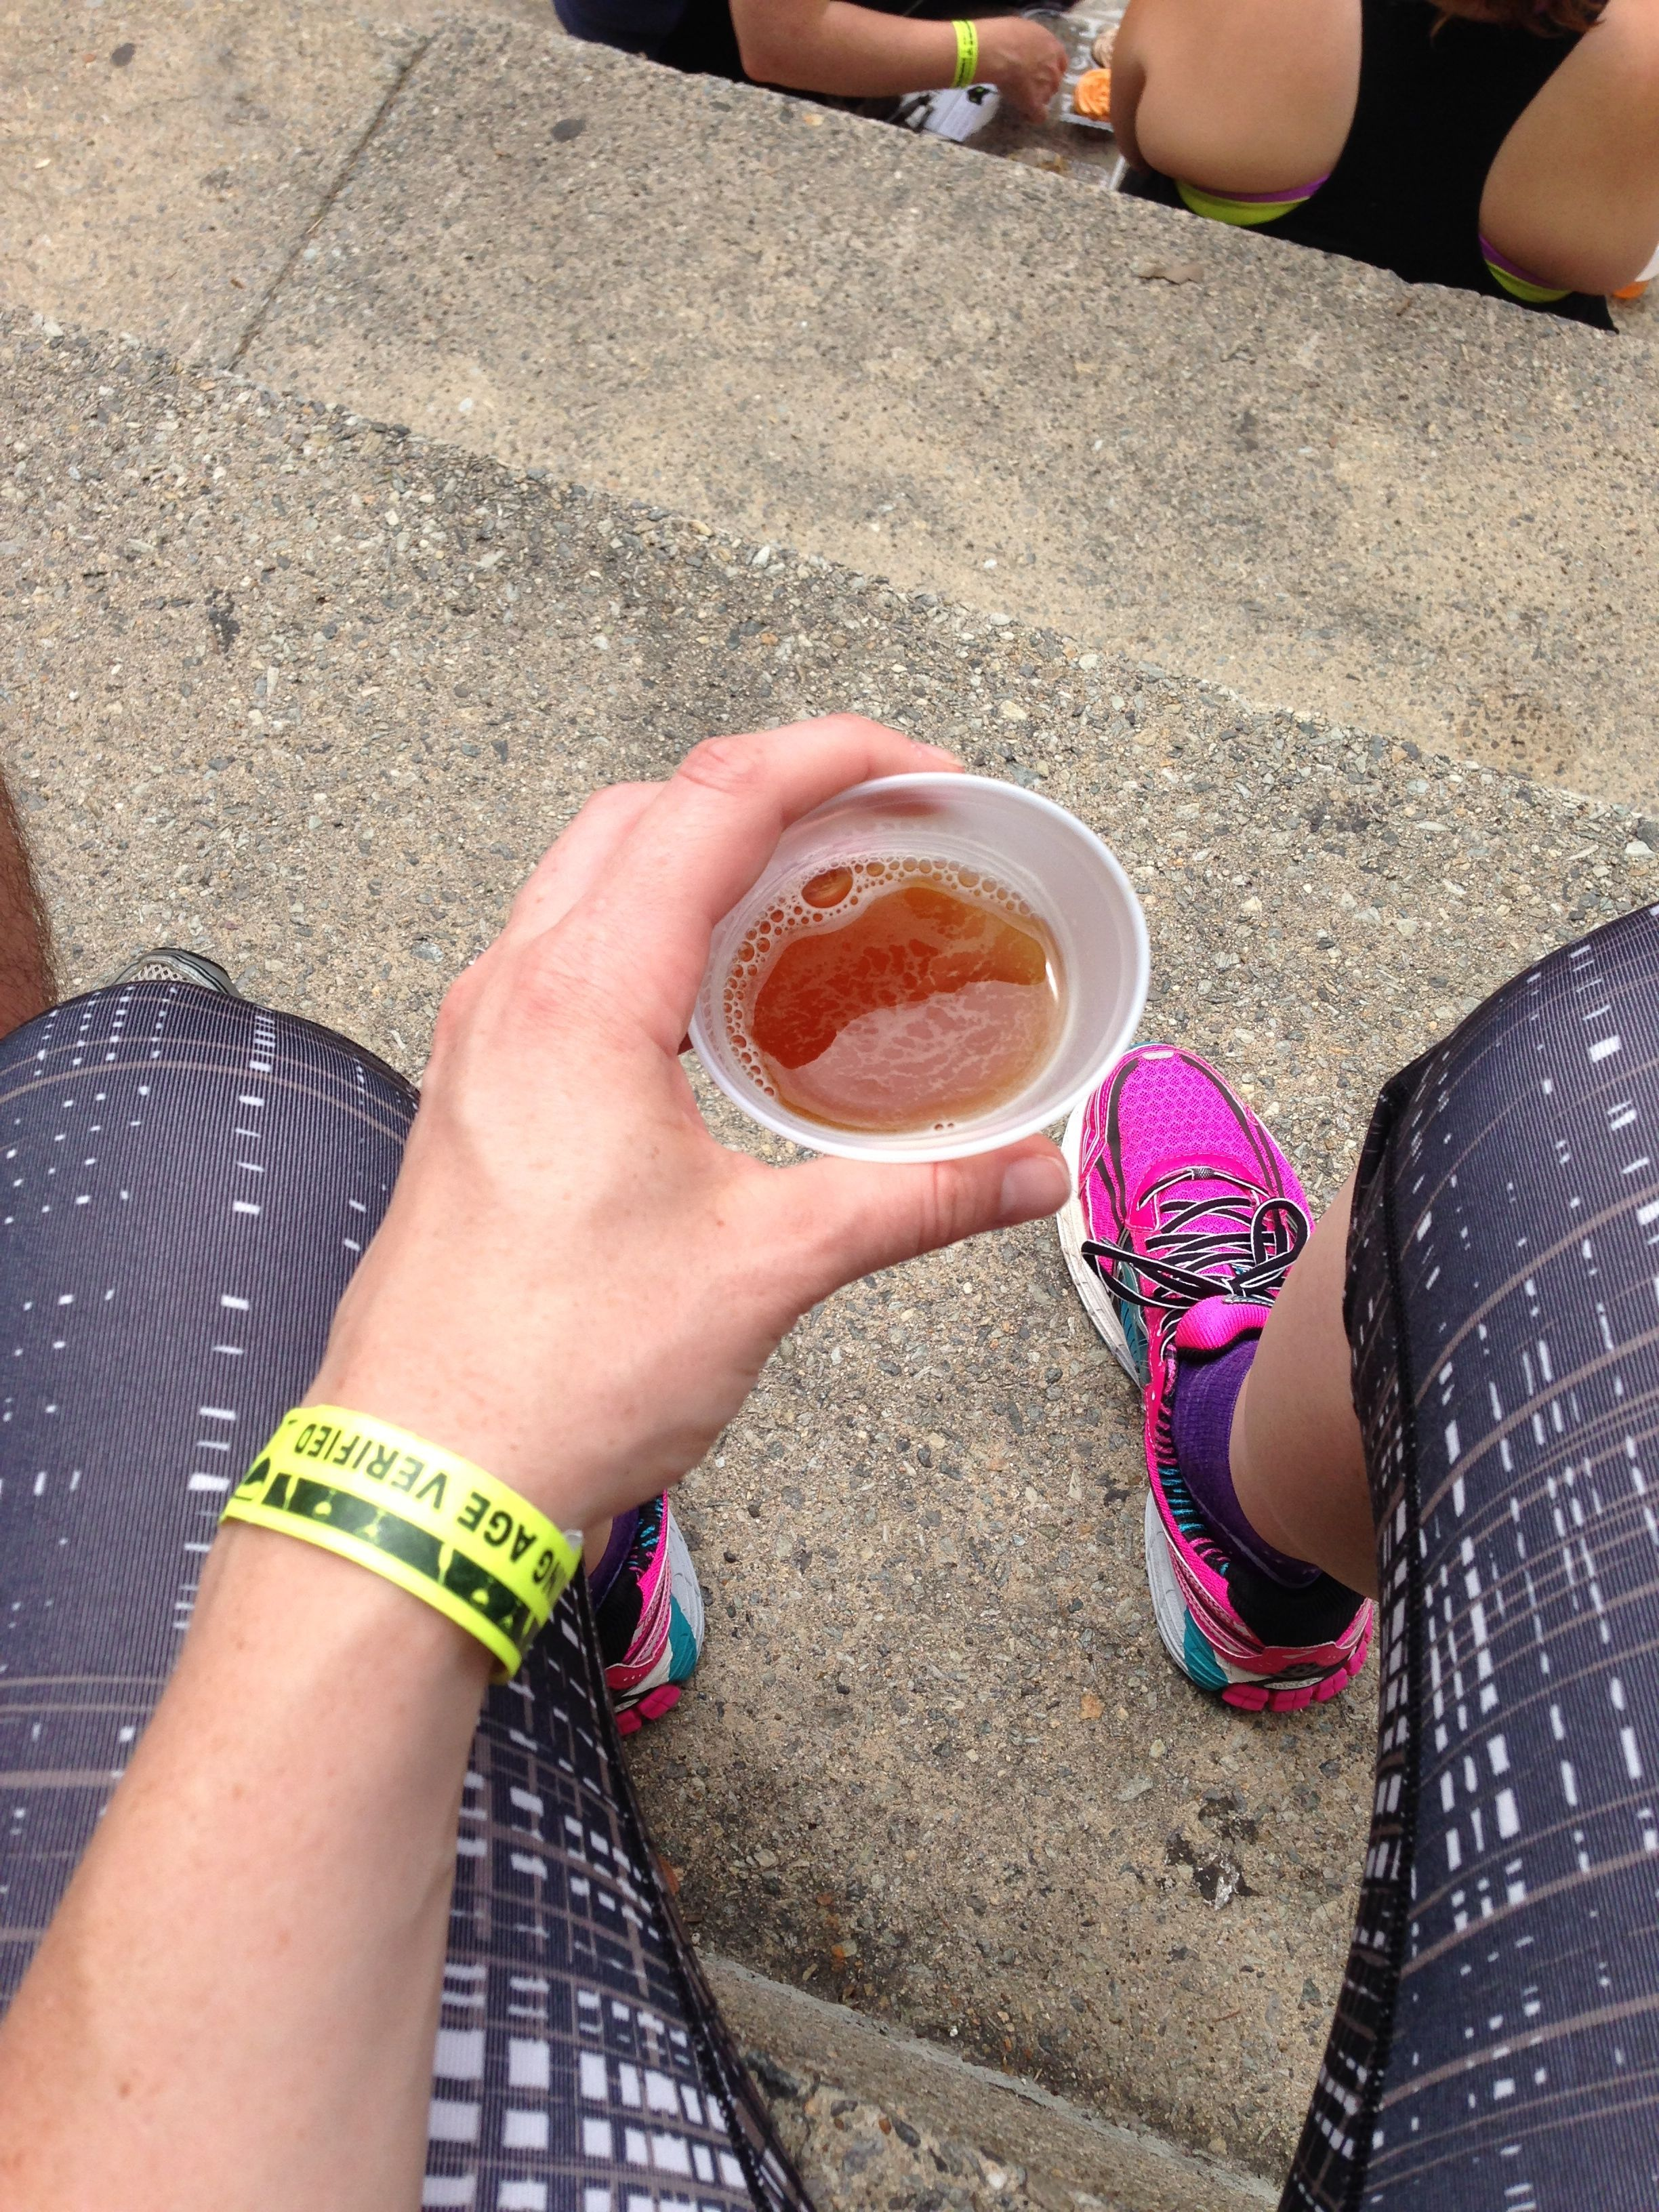 The best part of the race: Tasty beer and neon sneaks.